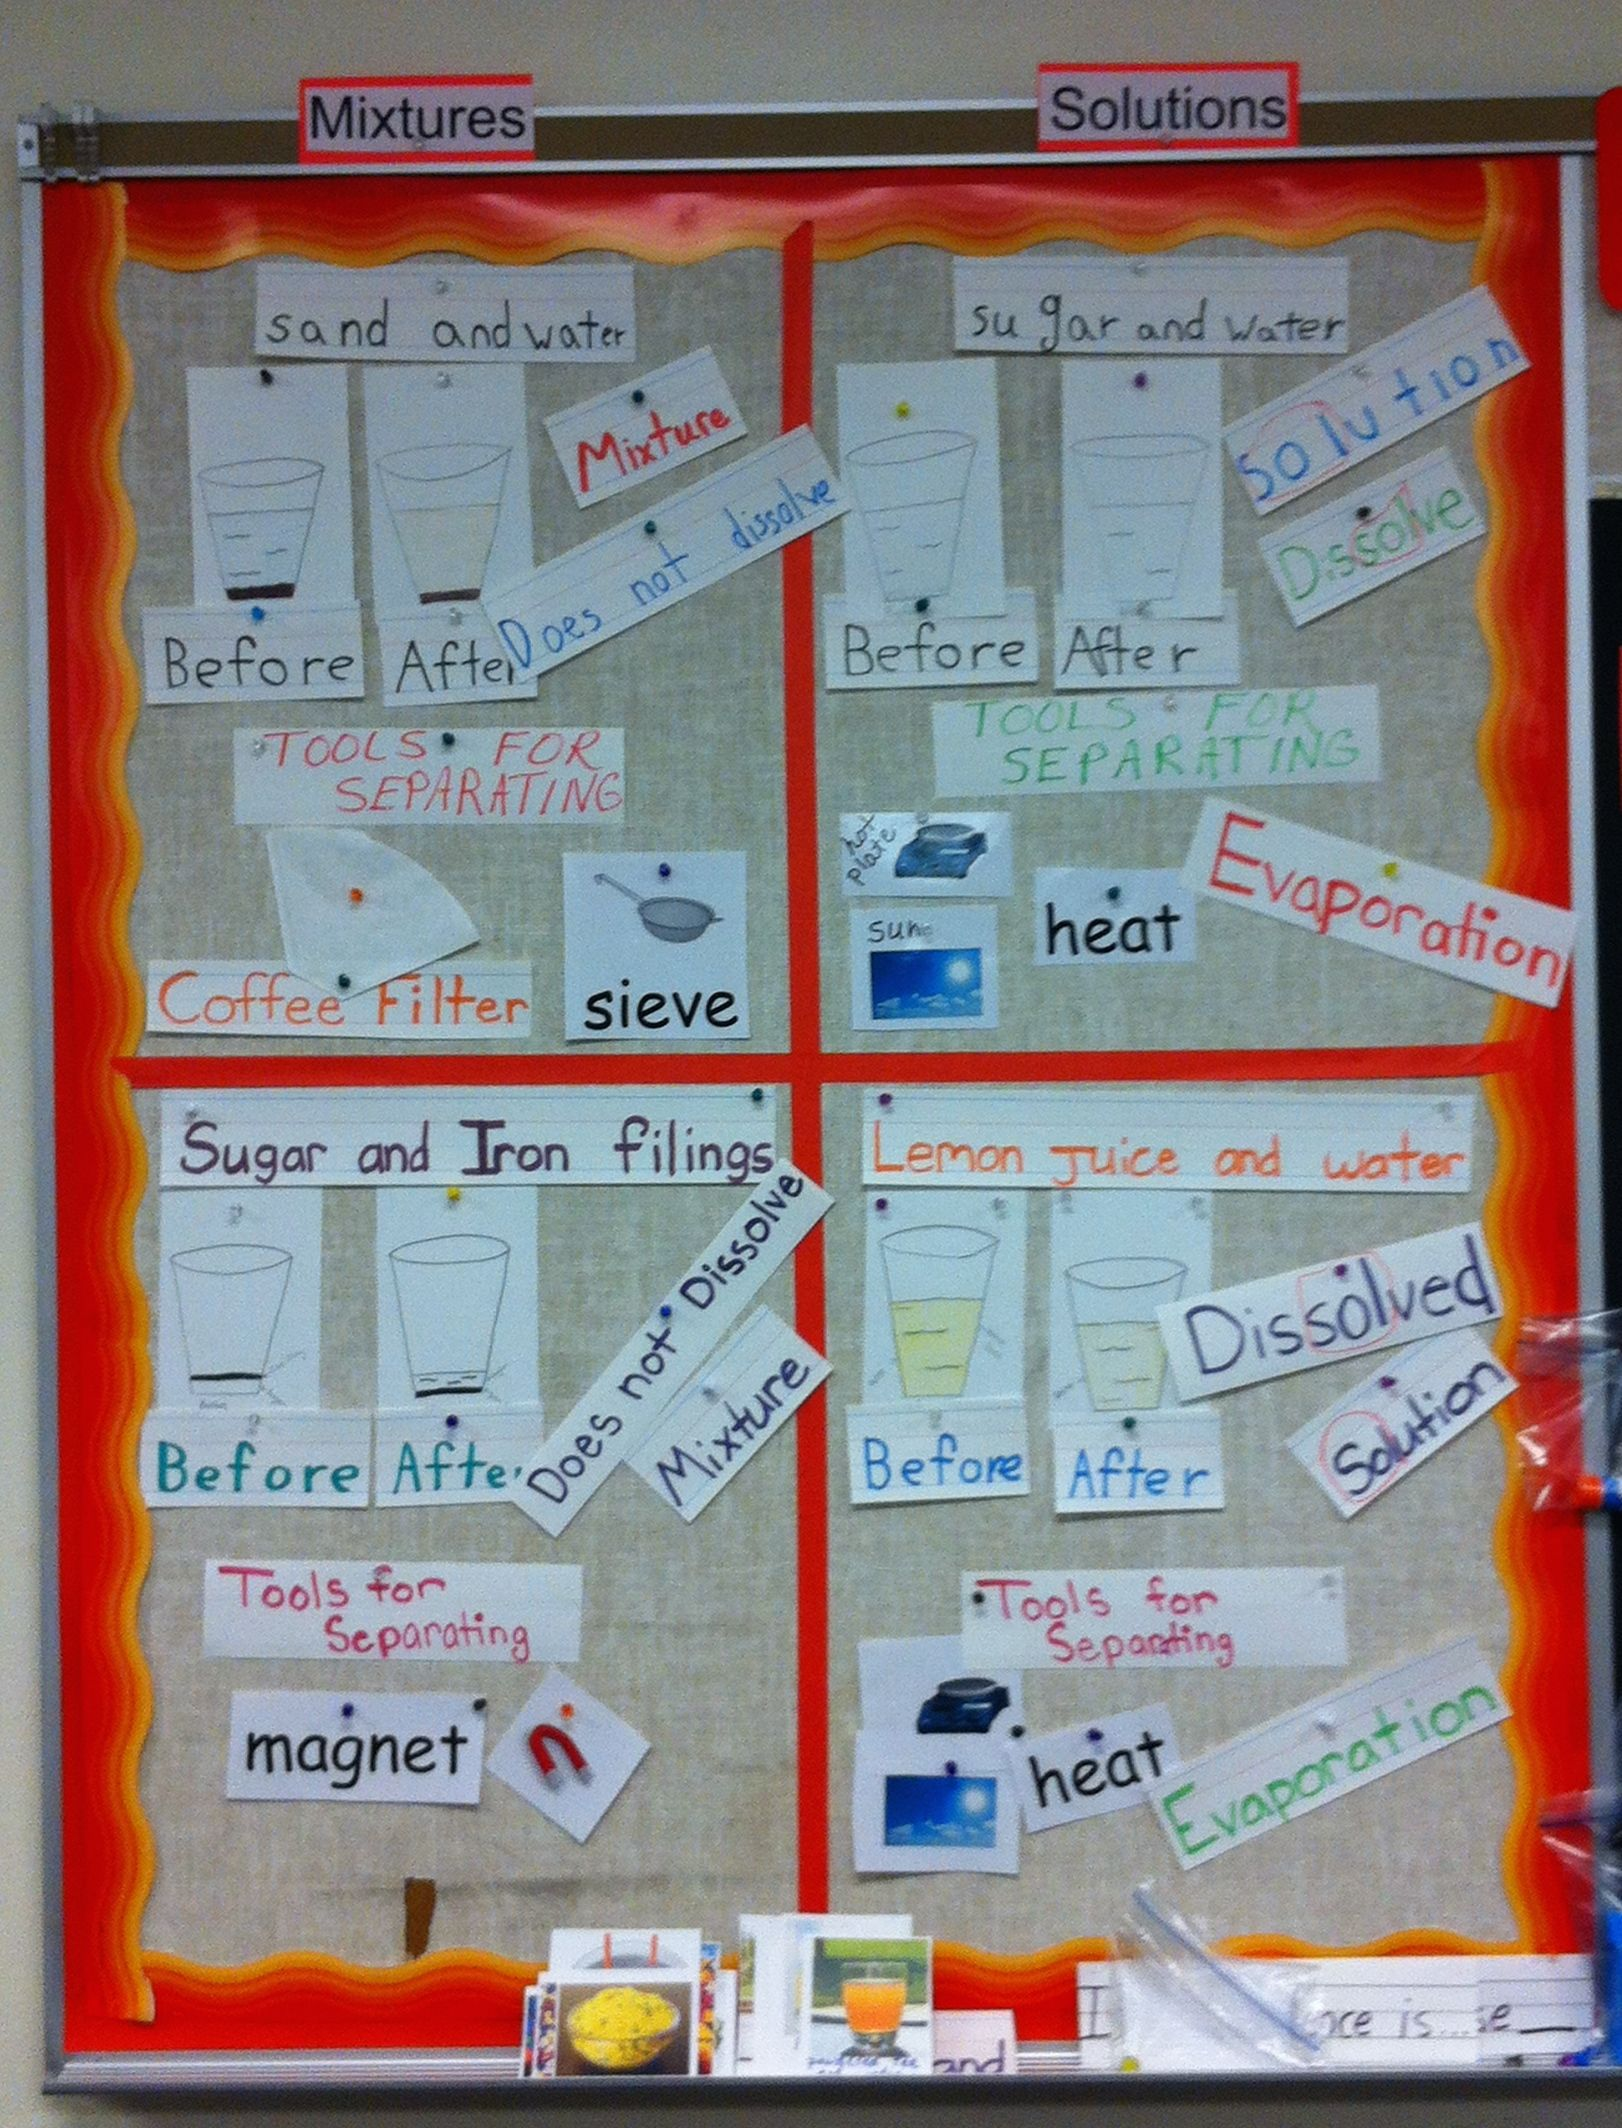 Science Teks 5 5cd Mixtures And Solutions Rrisd Interactive Word Wall Science Word Wall 5th Grade Science [ 2128 x 1622 Pixel ]